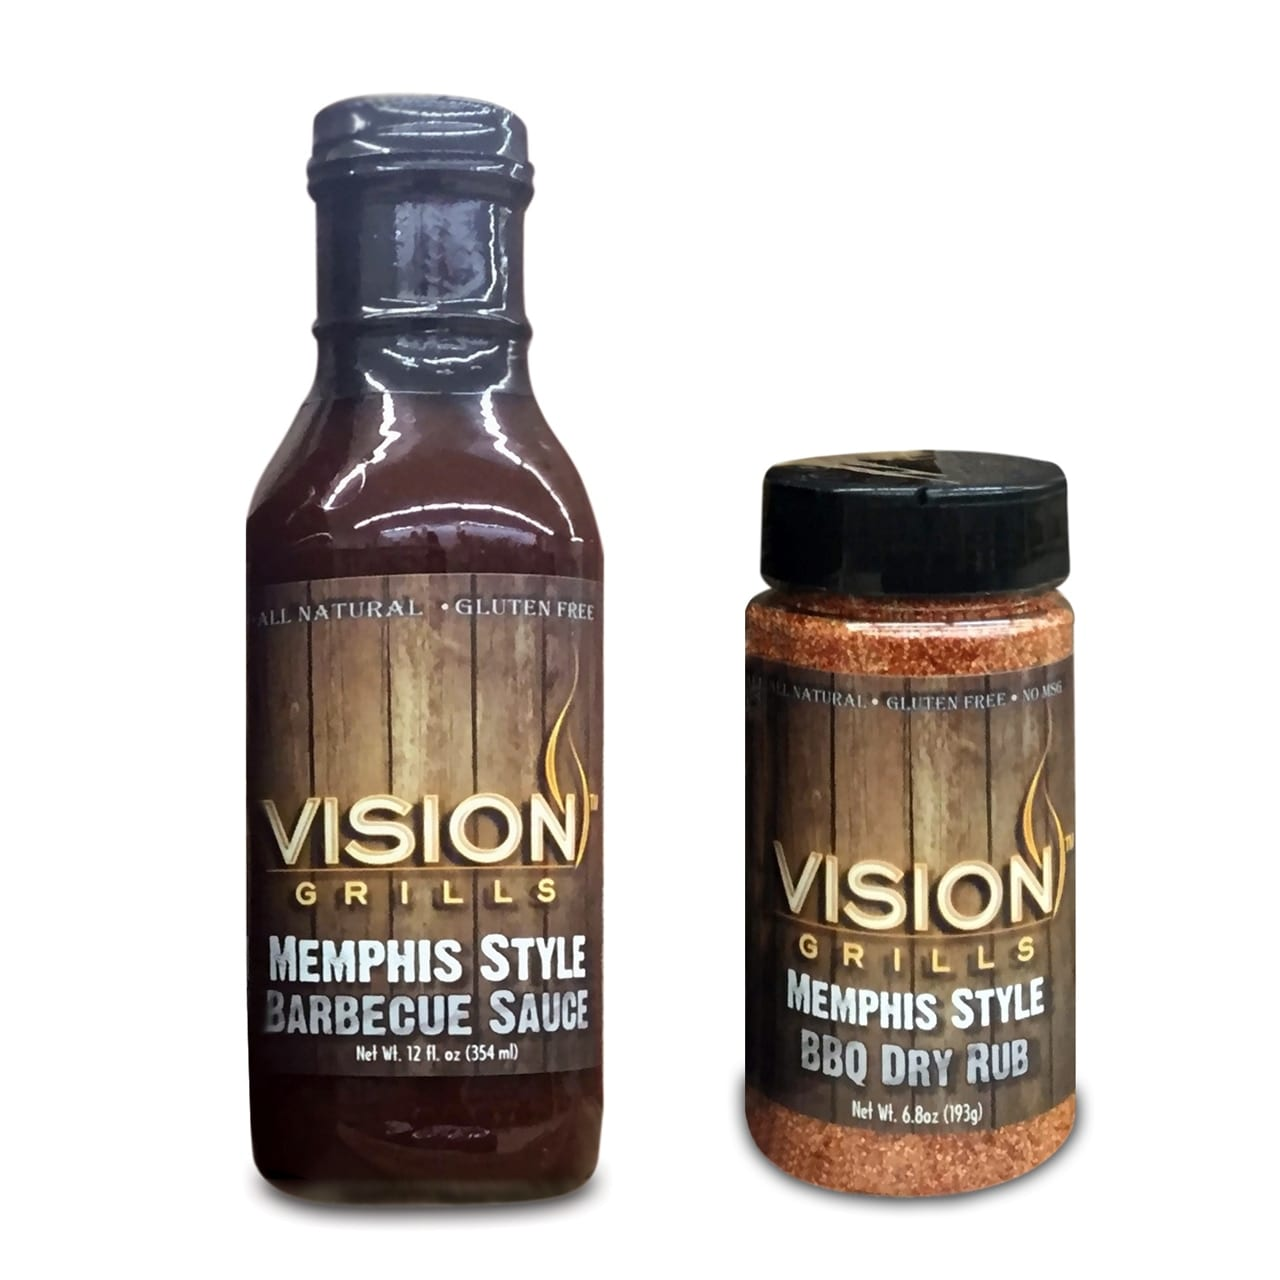 Memphis Style Barbecue Sauce & Dry Rub